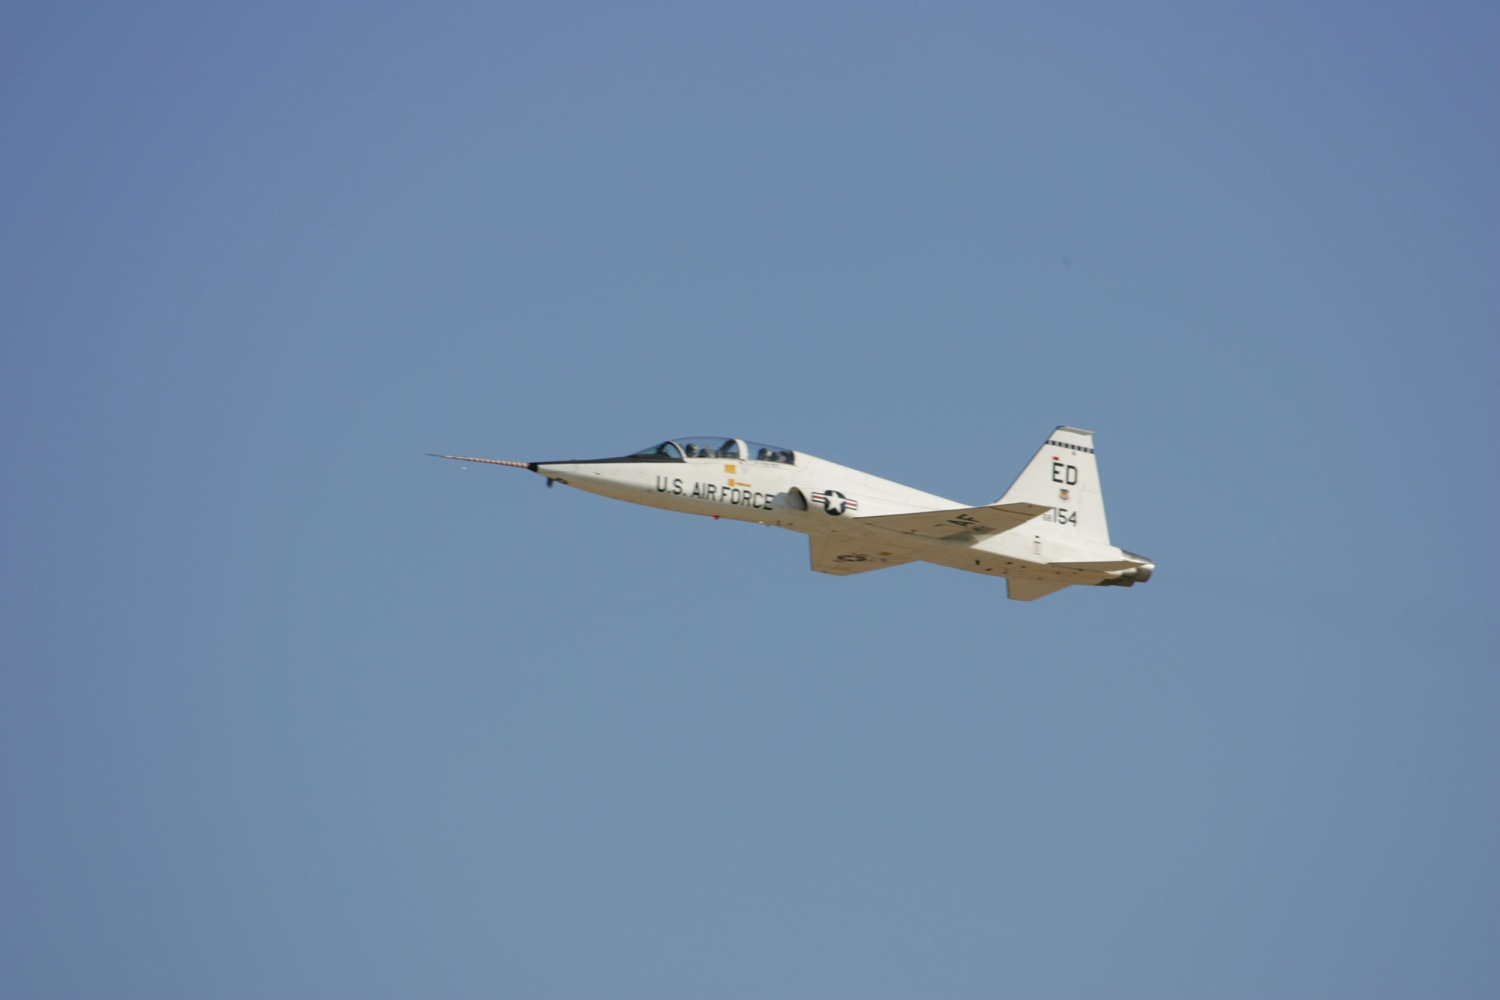 Air Force training jet crashes in West Texas